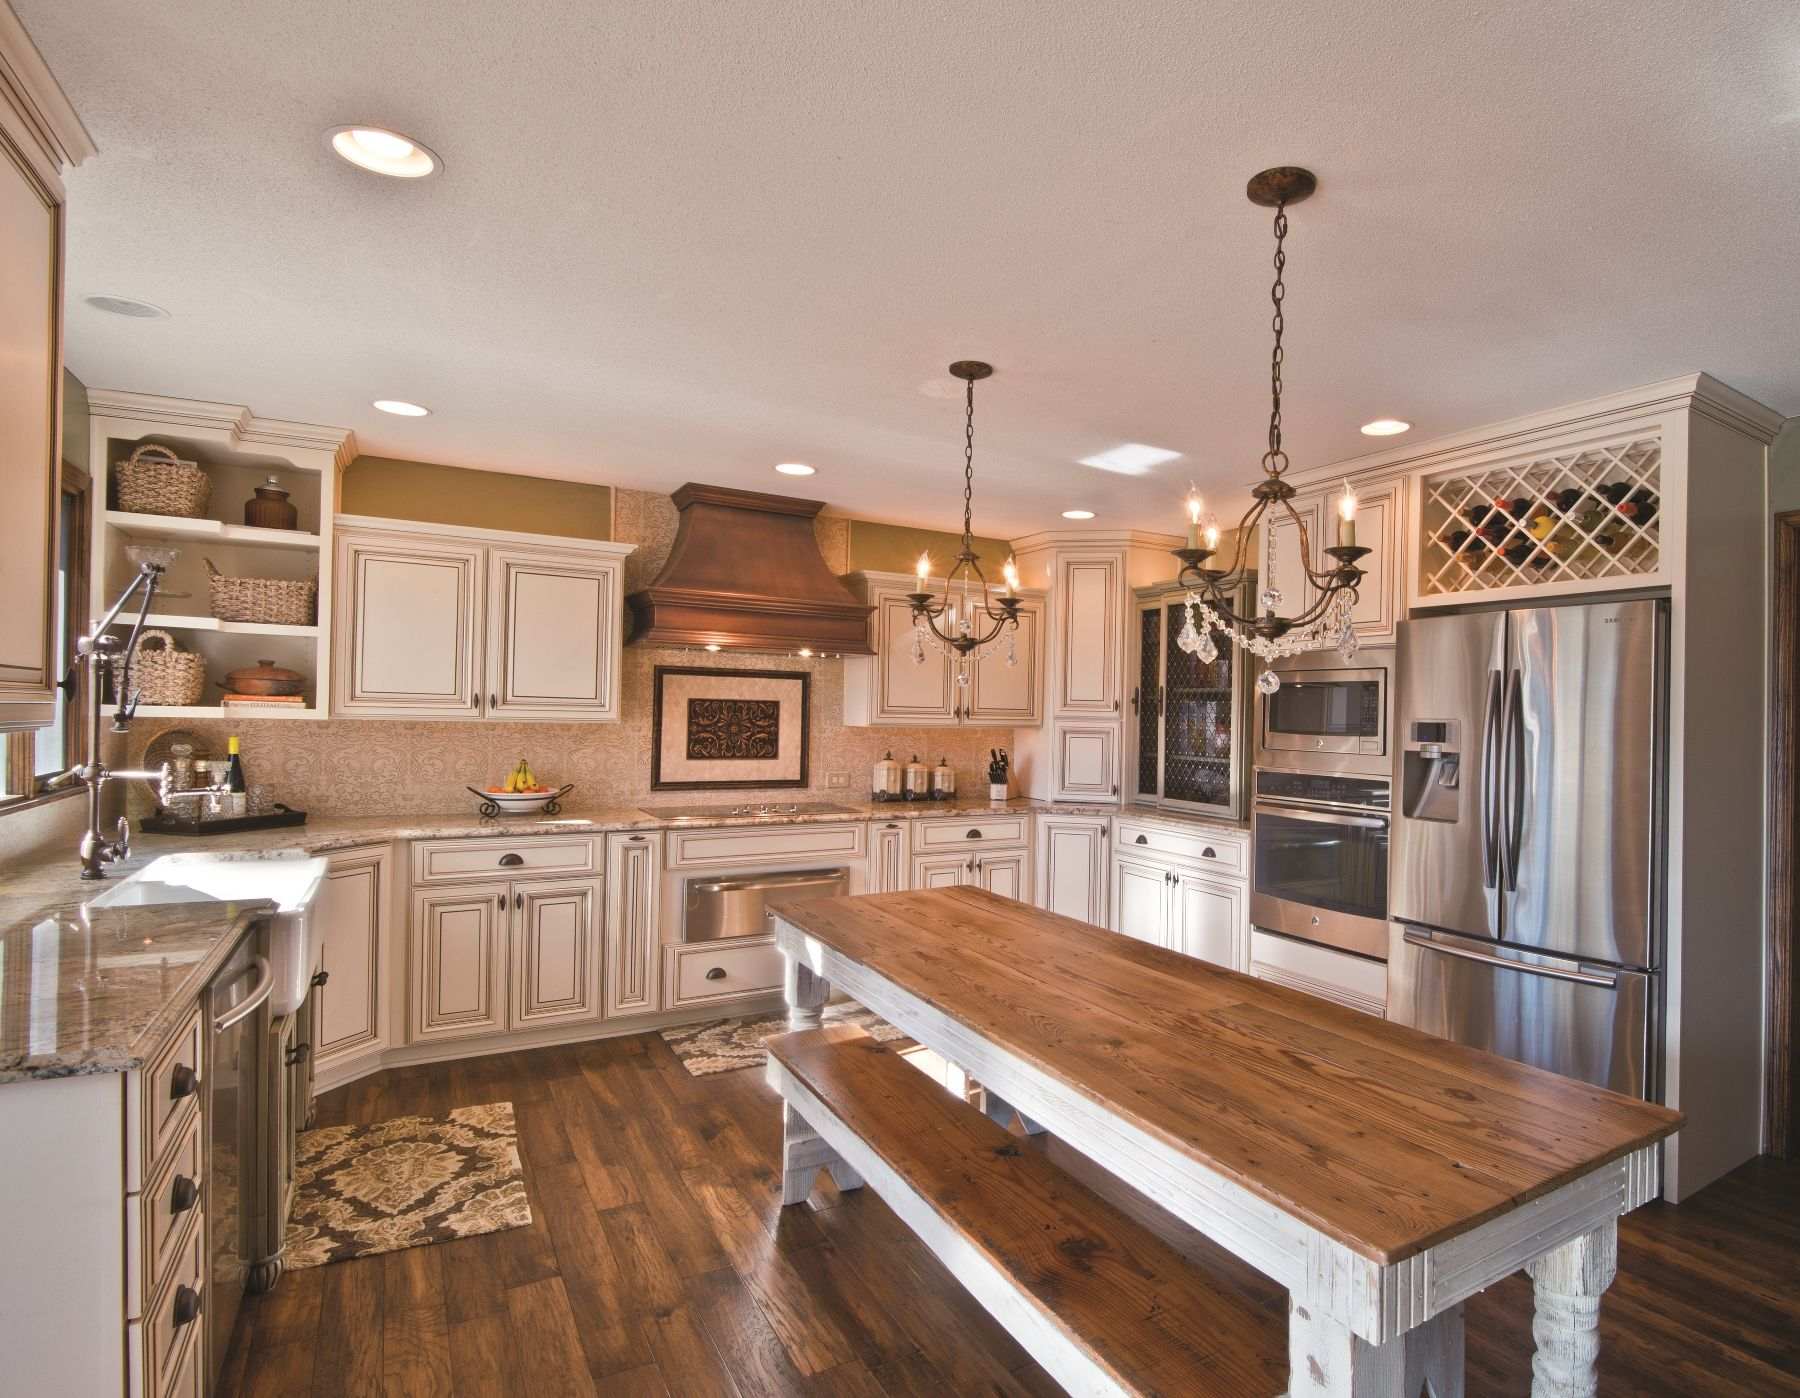 FABULOUS!! Painted Bisque Maple Cabinets With Glaze. Wine Rack, Open Shelving In Upper Cabinets